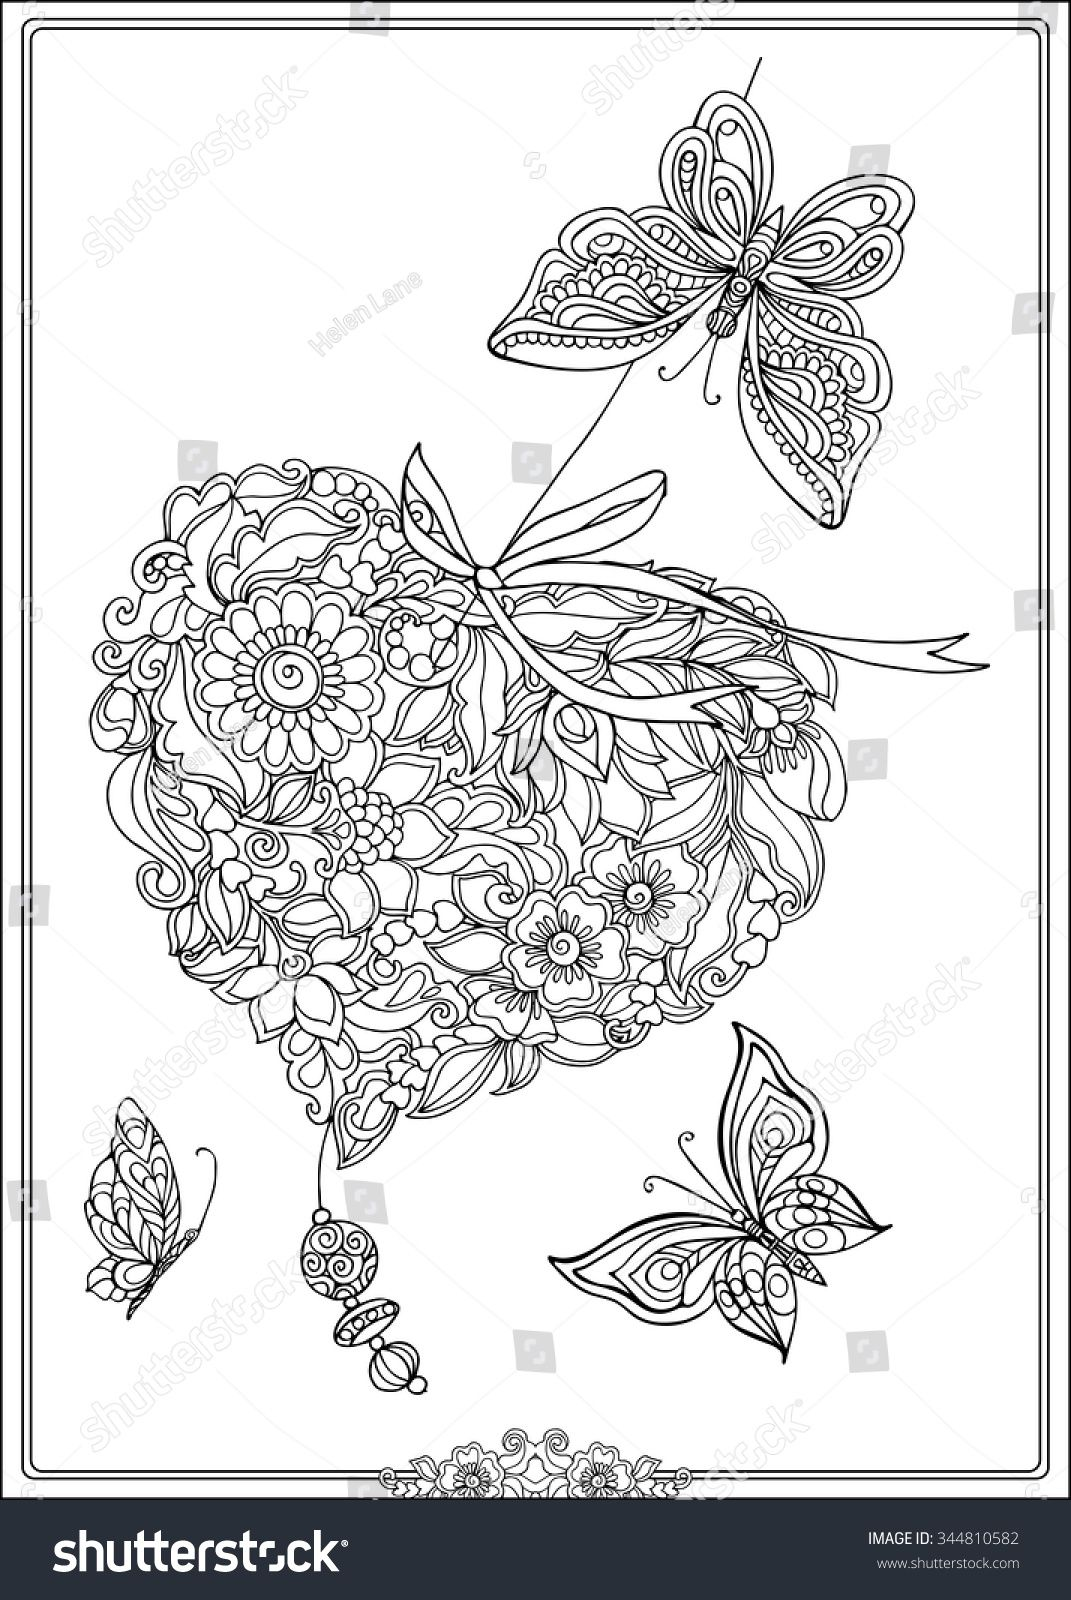 Coloring Book For Adult And Older Children Page With Decorative Vintage Flowers Butterflies Outline Hand Drawn Vector